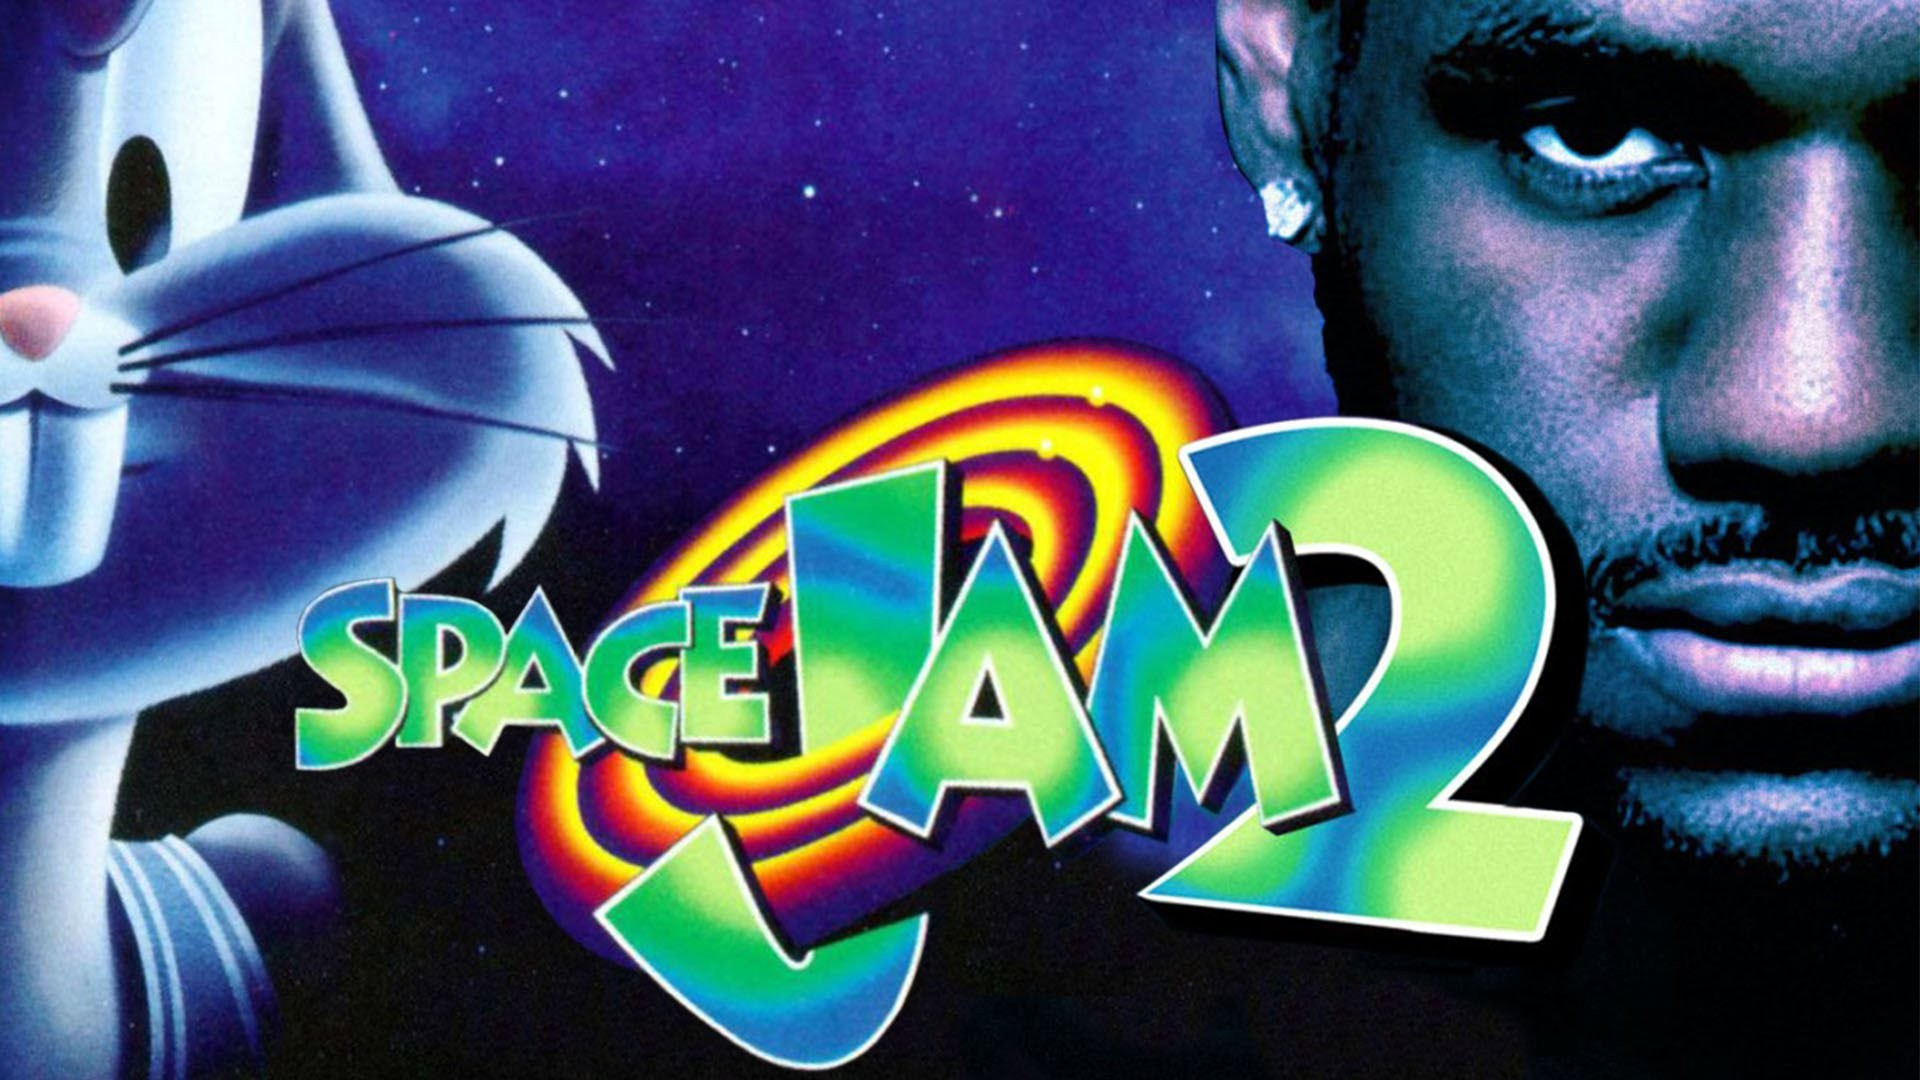 Space Jam 2' Will Begin Production in 2019, Black Panther's